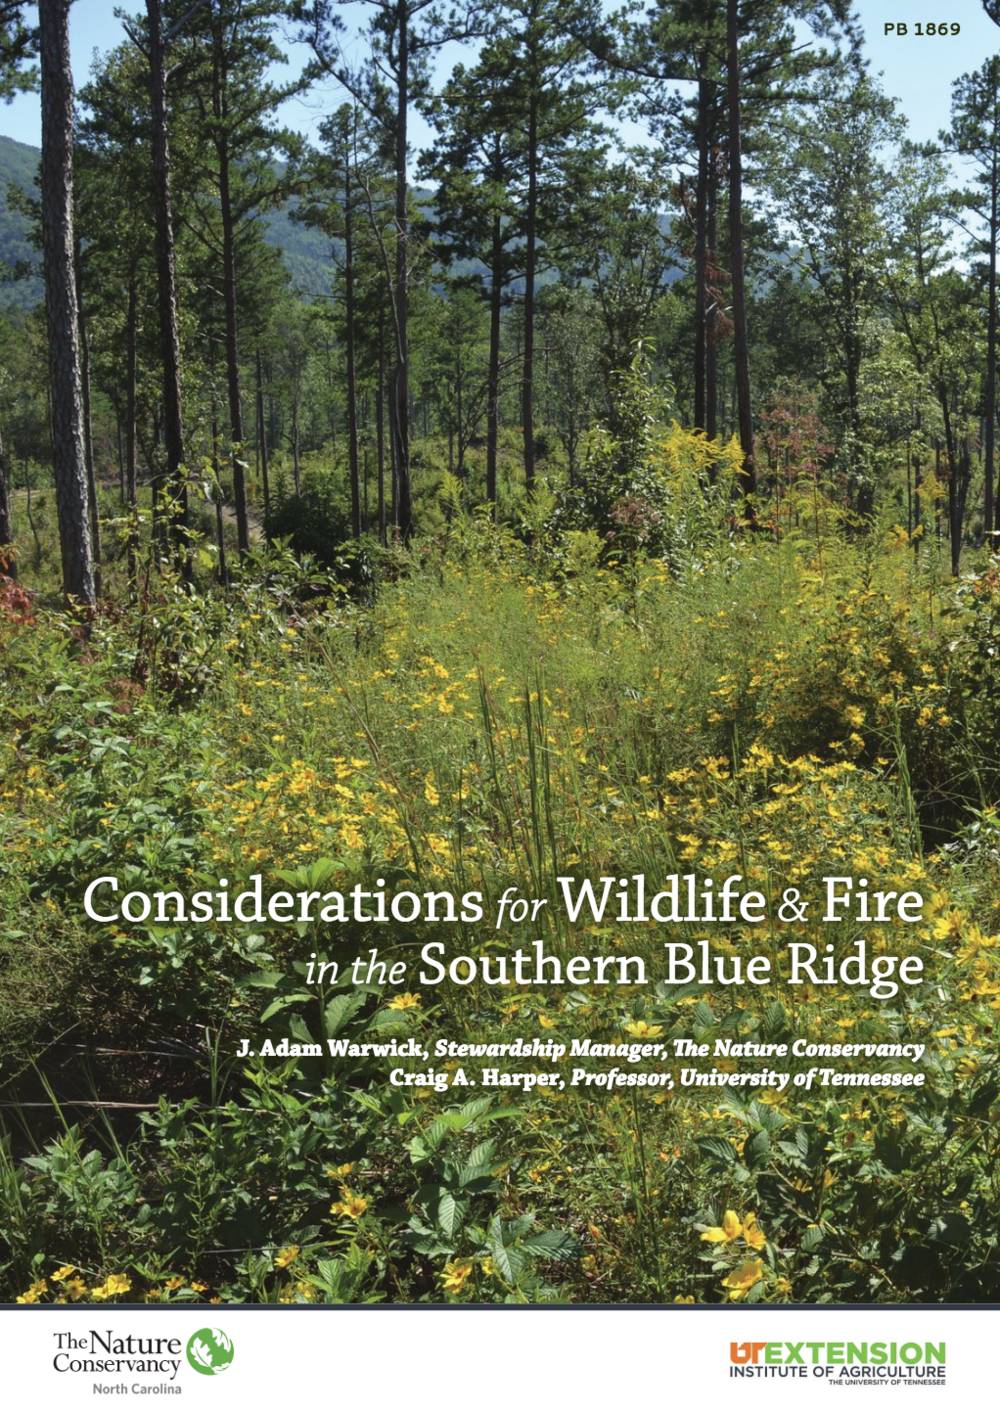 Considerations for Wildlife & Fire in the Southern Blue Ridge